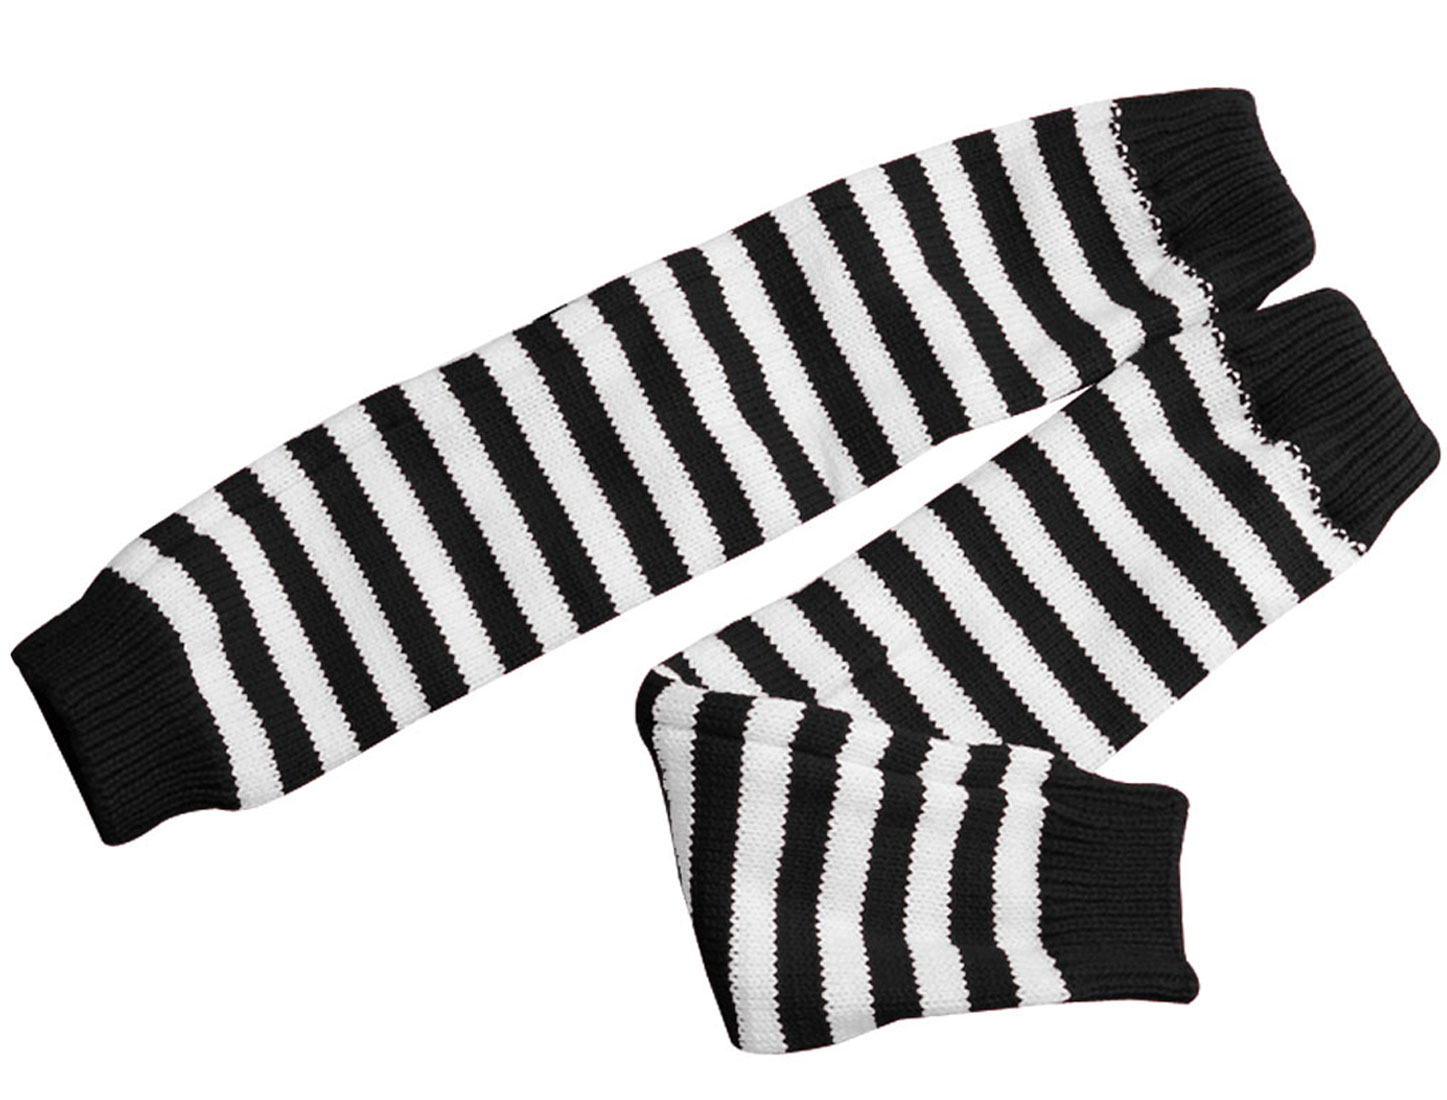 Men Balck White Stripes Fingerless Winter Stretch Long Gloves